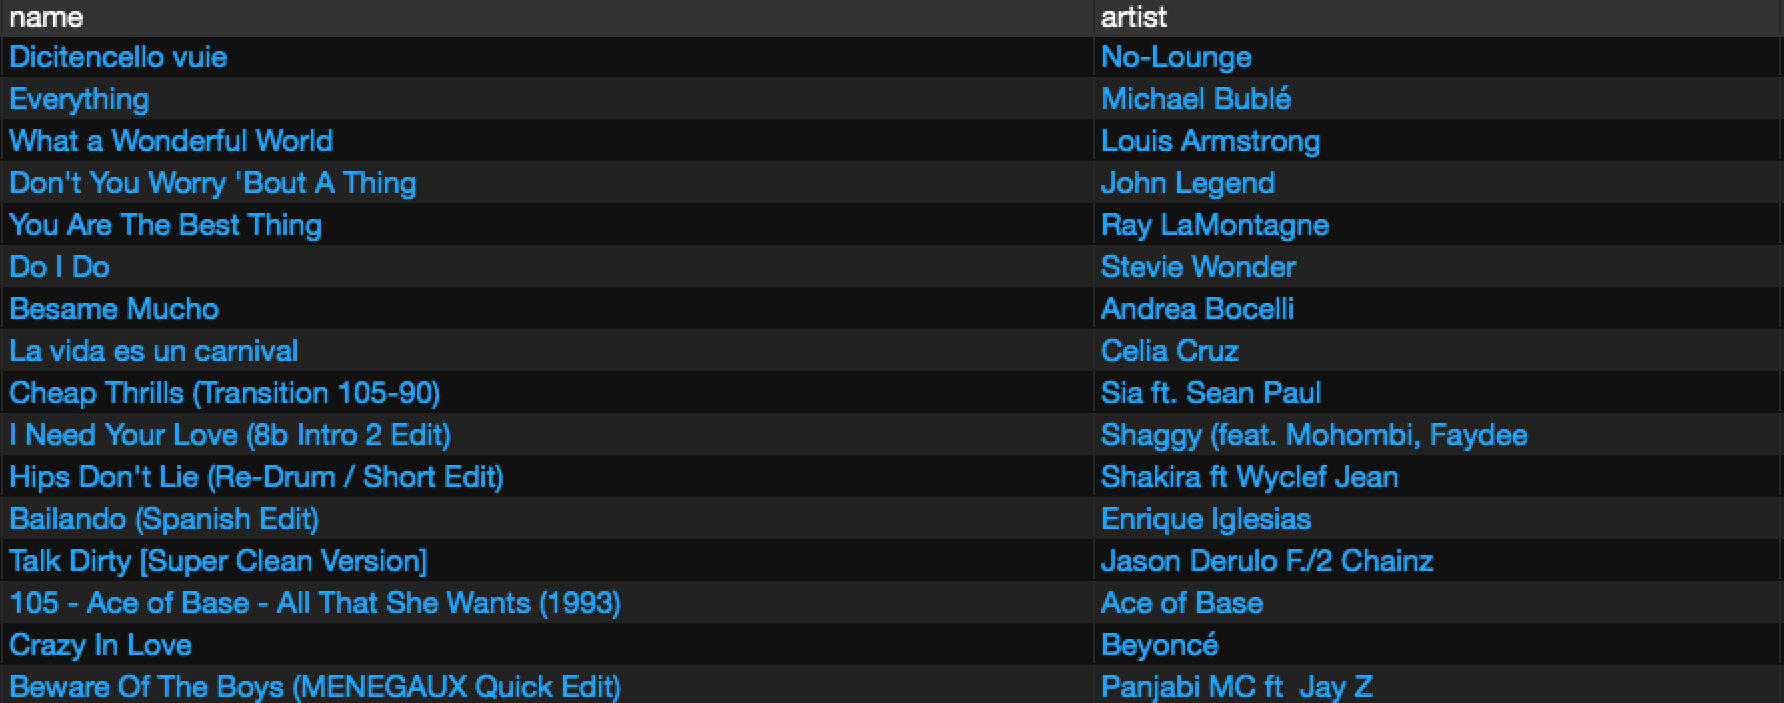 04:01:17_PLAYLIST3.png